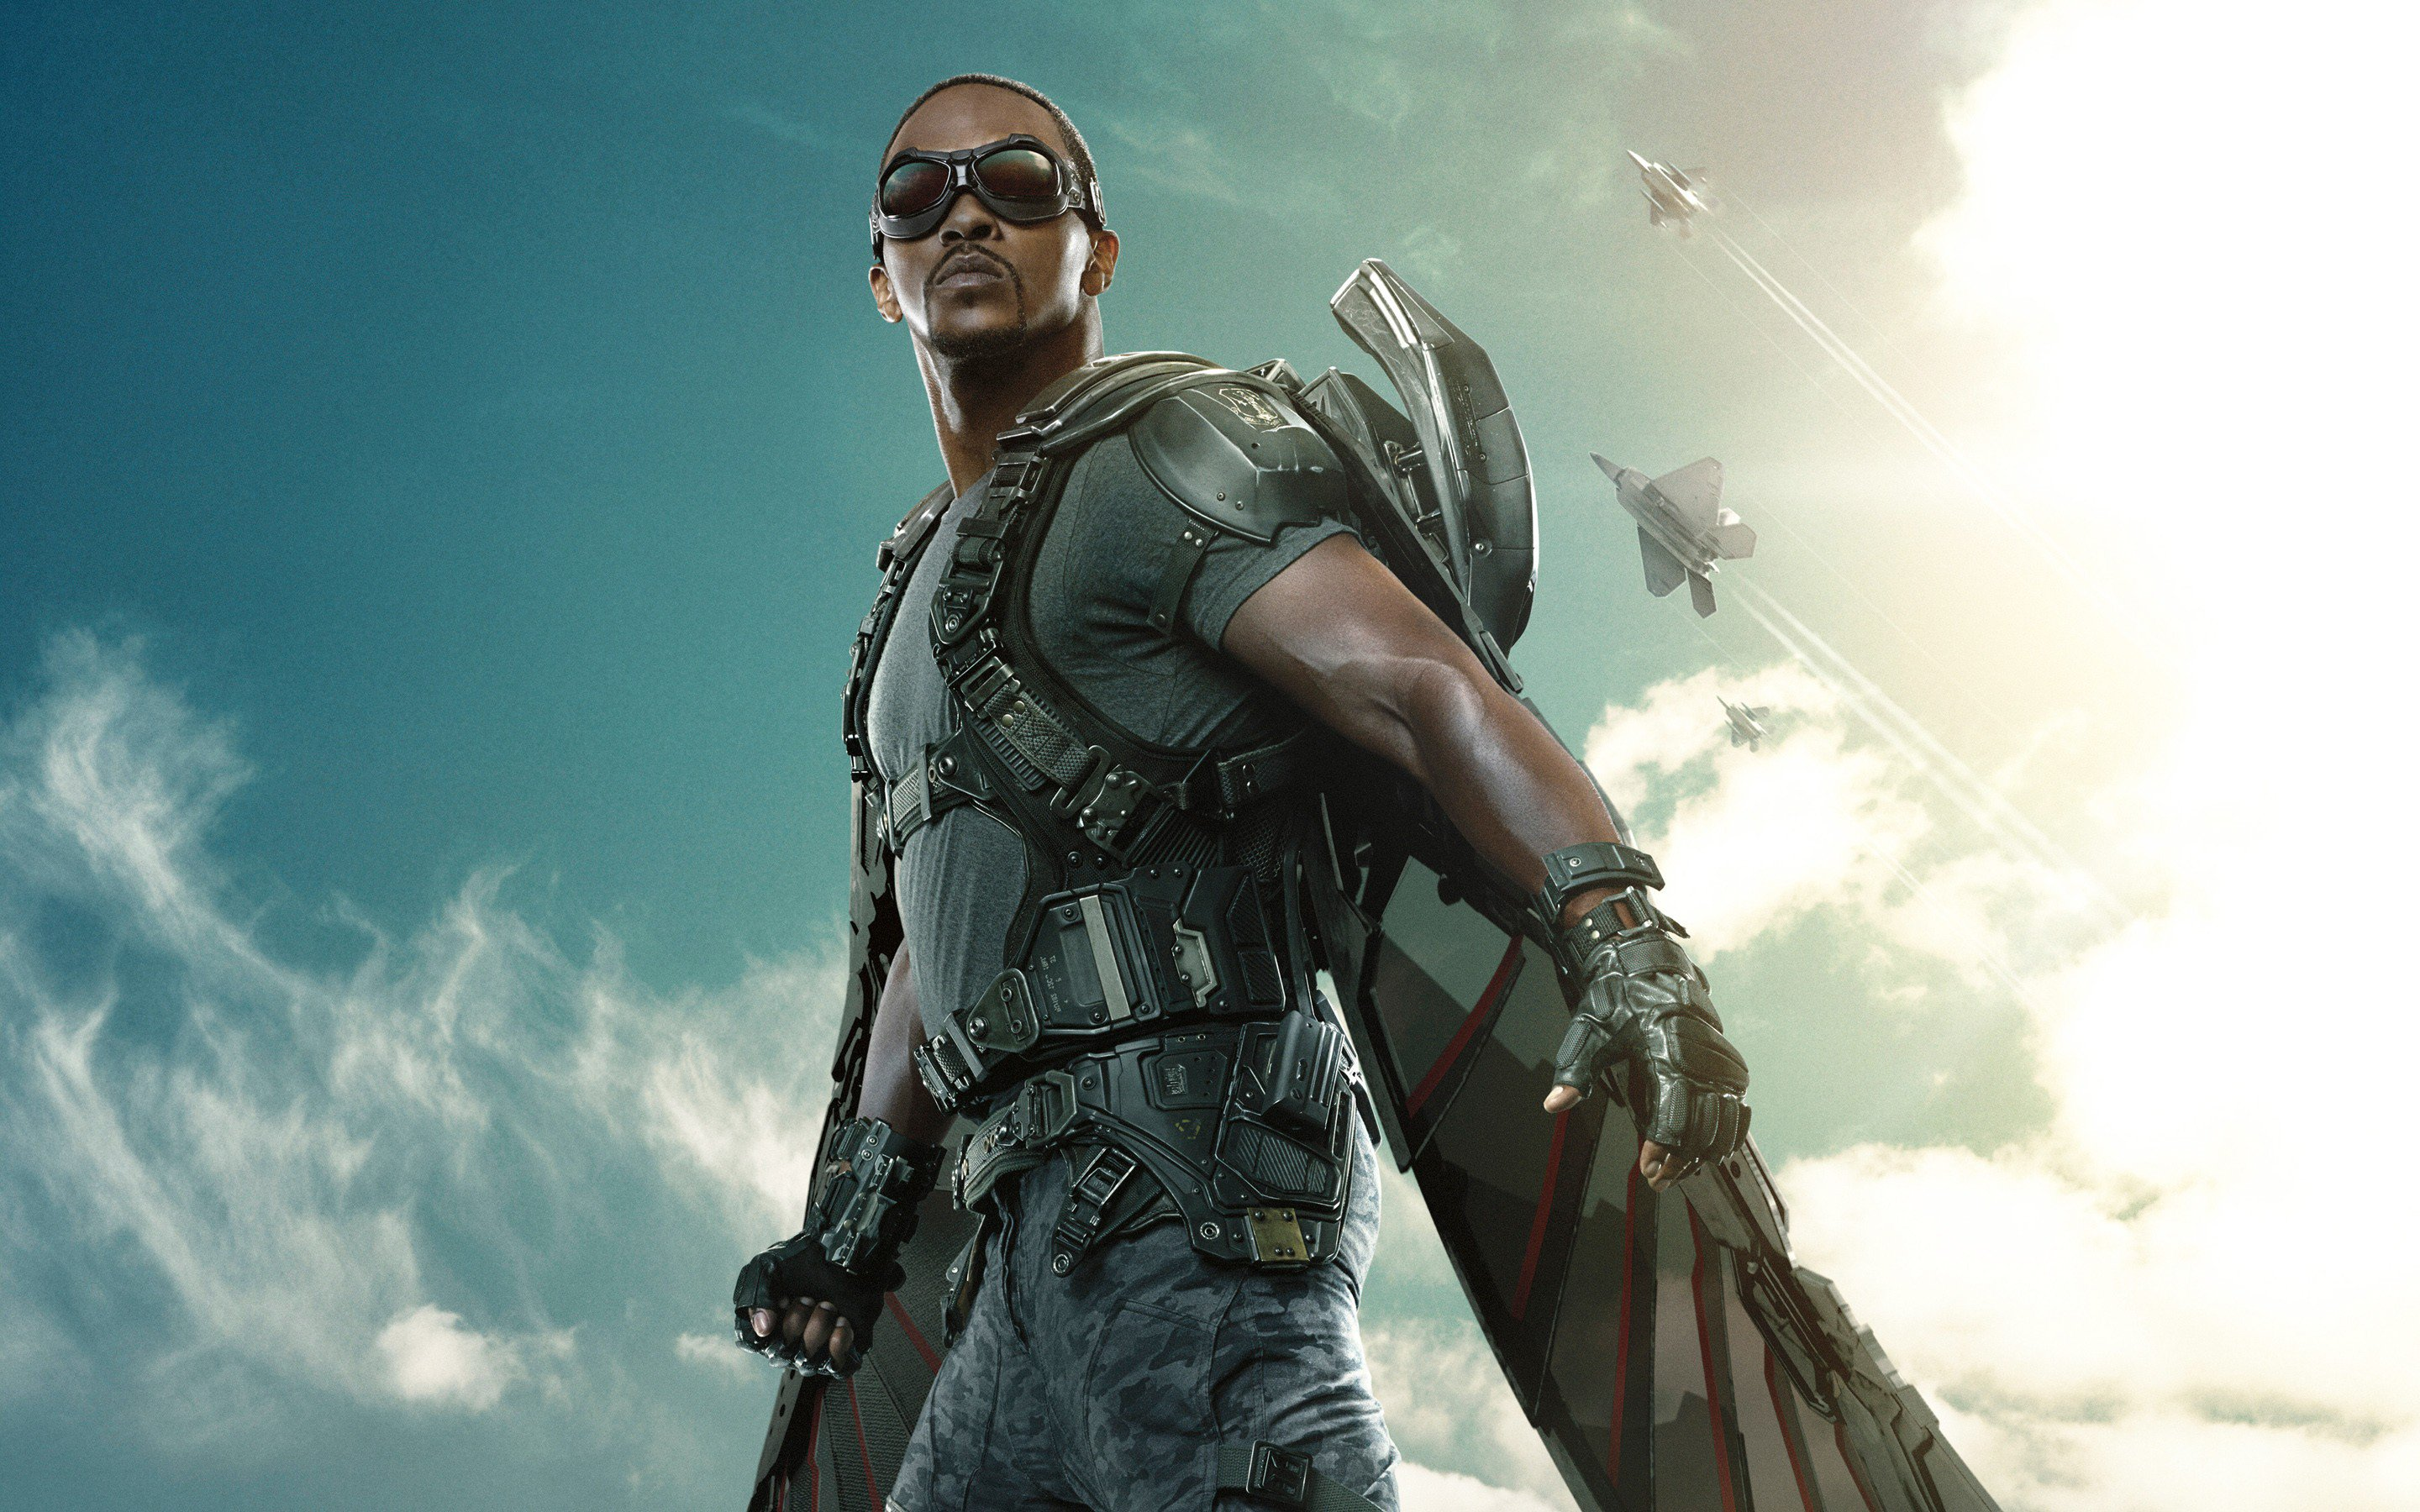 240x320 the falcon captain america the winter soldier nokia 230